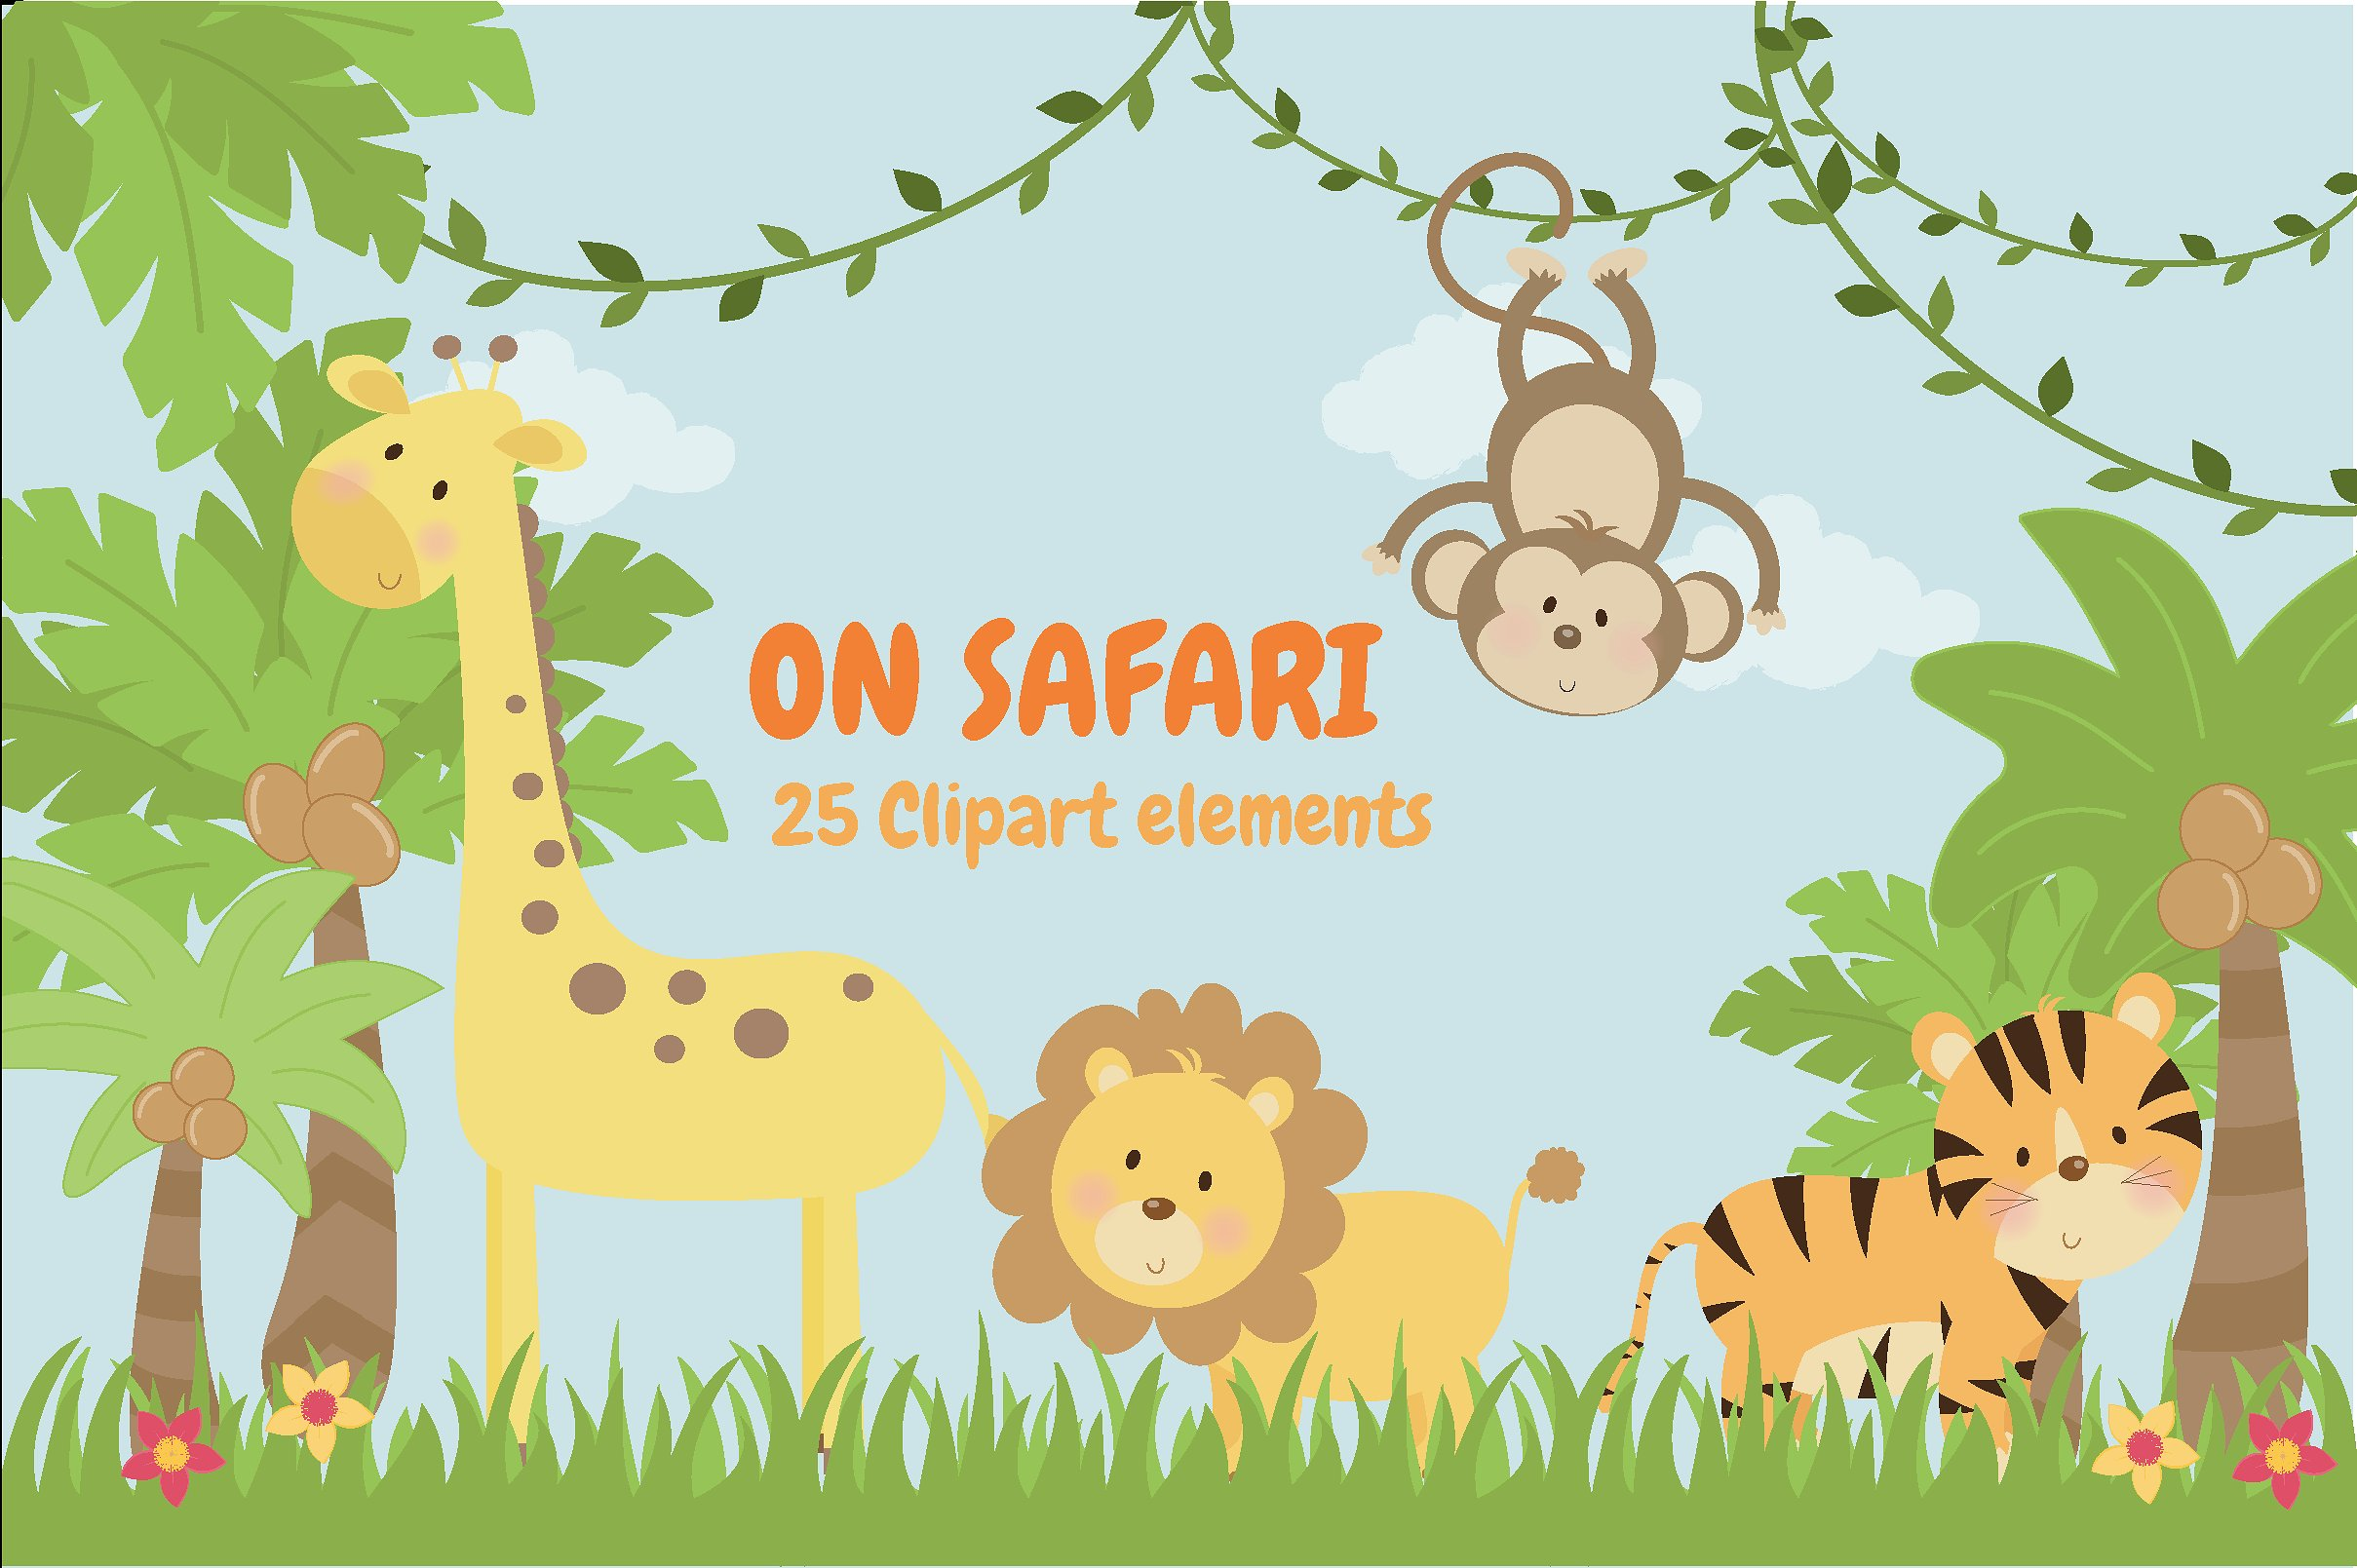 Safari clipart safari themed. On illustrations creative market